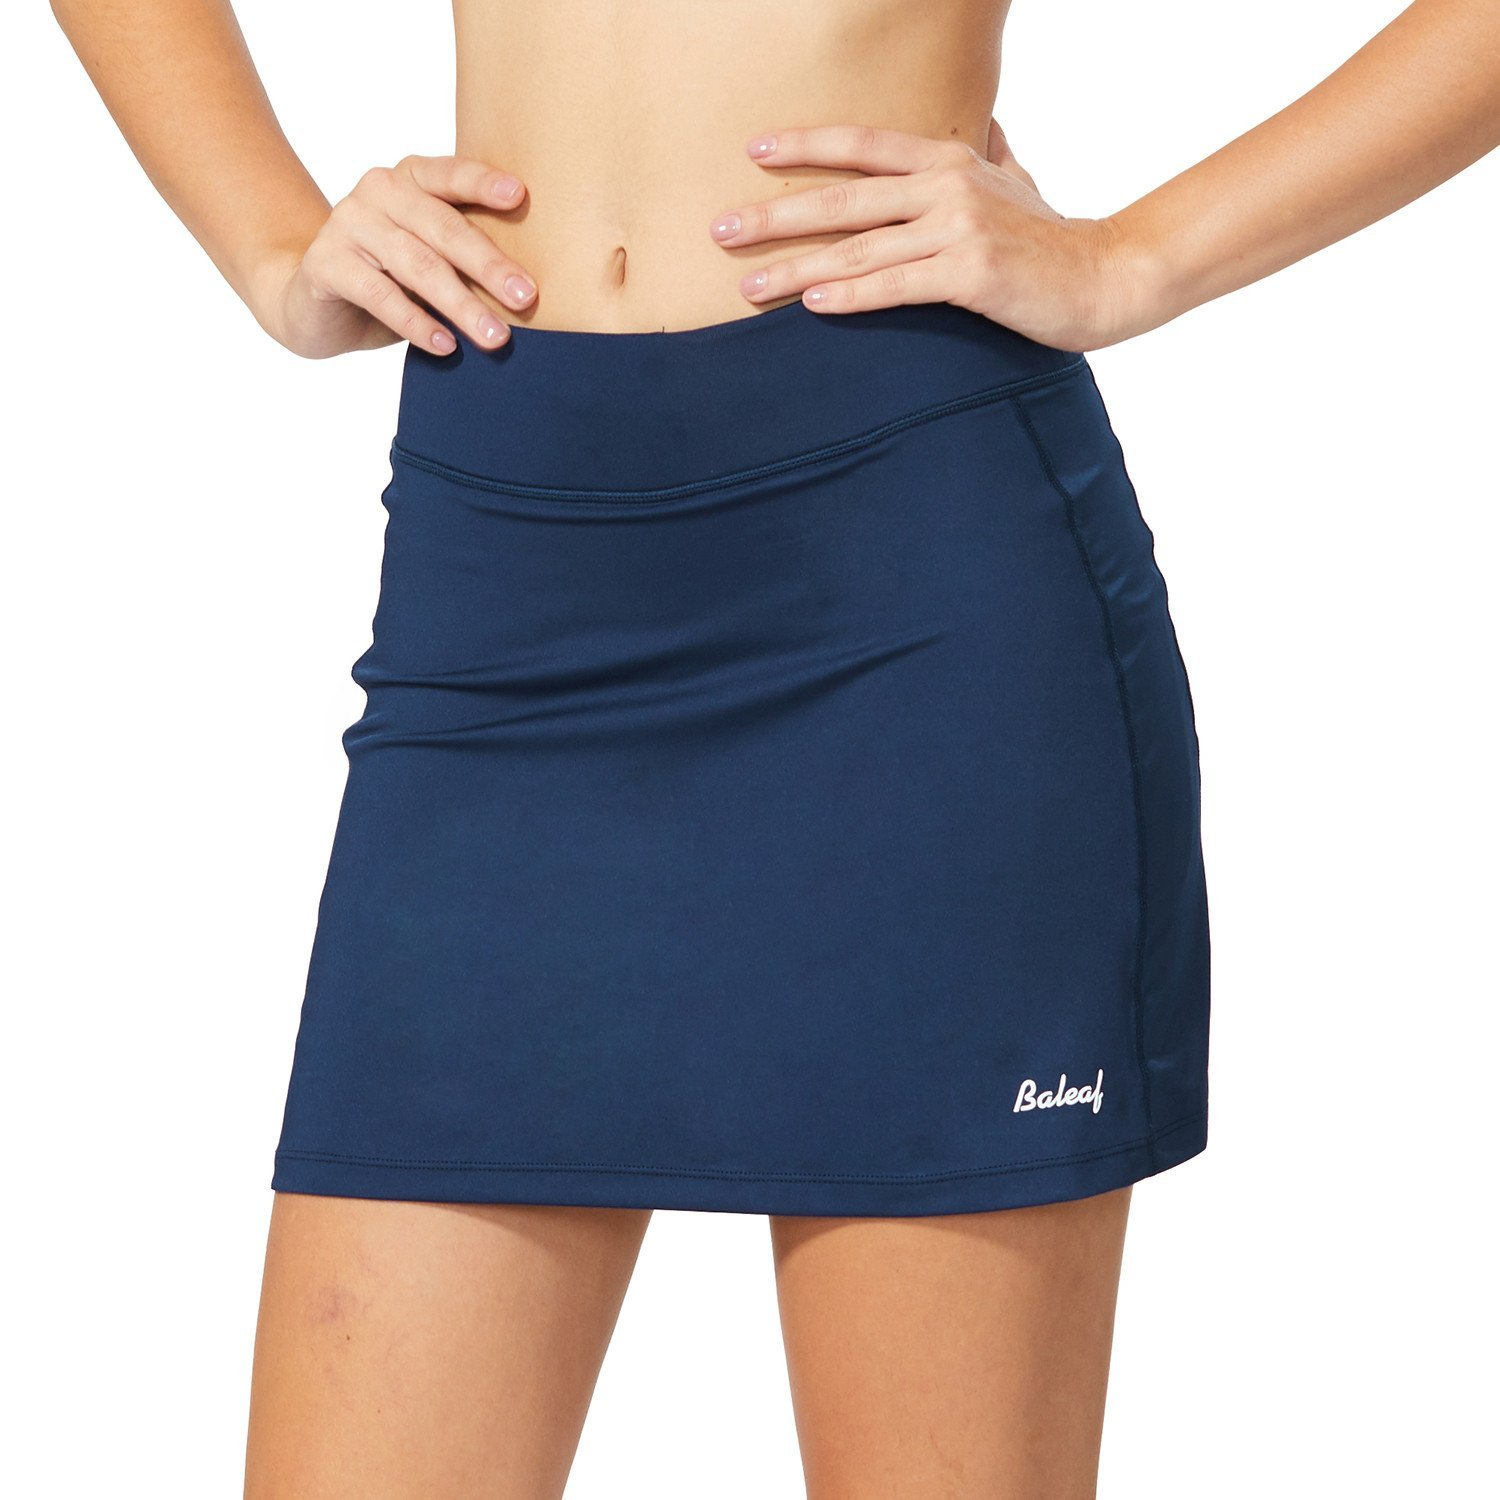 e06edc851103 Baleaf Women s Active Athletic Skort Lightweight Skirt with Pockets for  Running Tennis Golf Workout